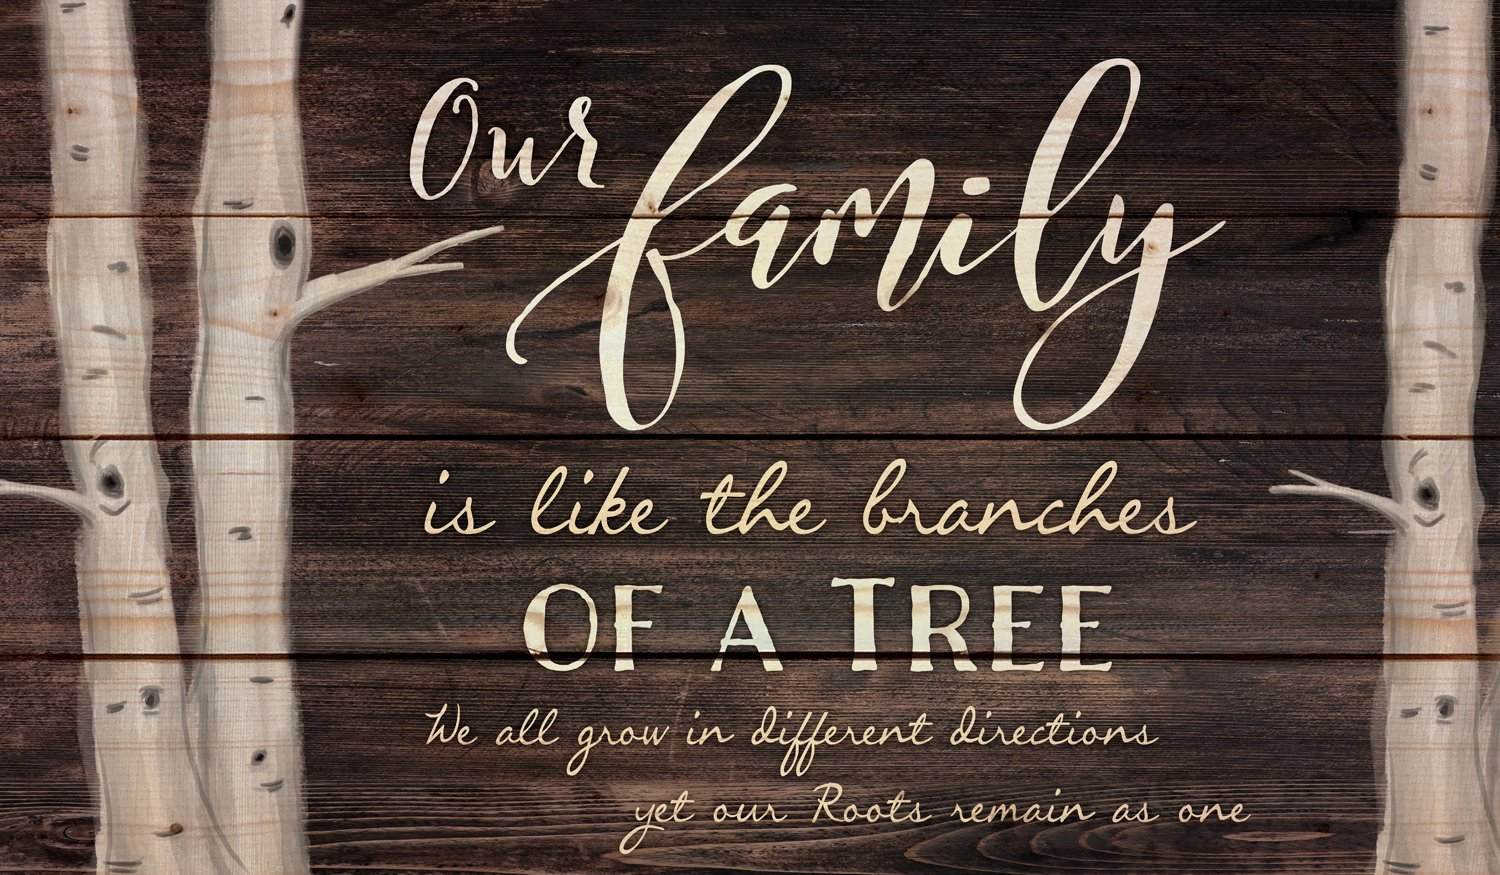 Our Family Tree Dark Distressed 24 x 14 Inch Solid Pine Wood Pallet Wall Plaque Sign